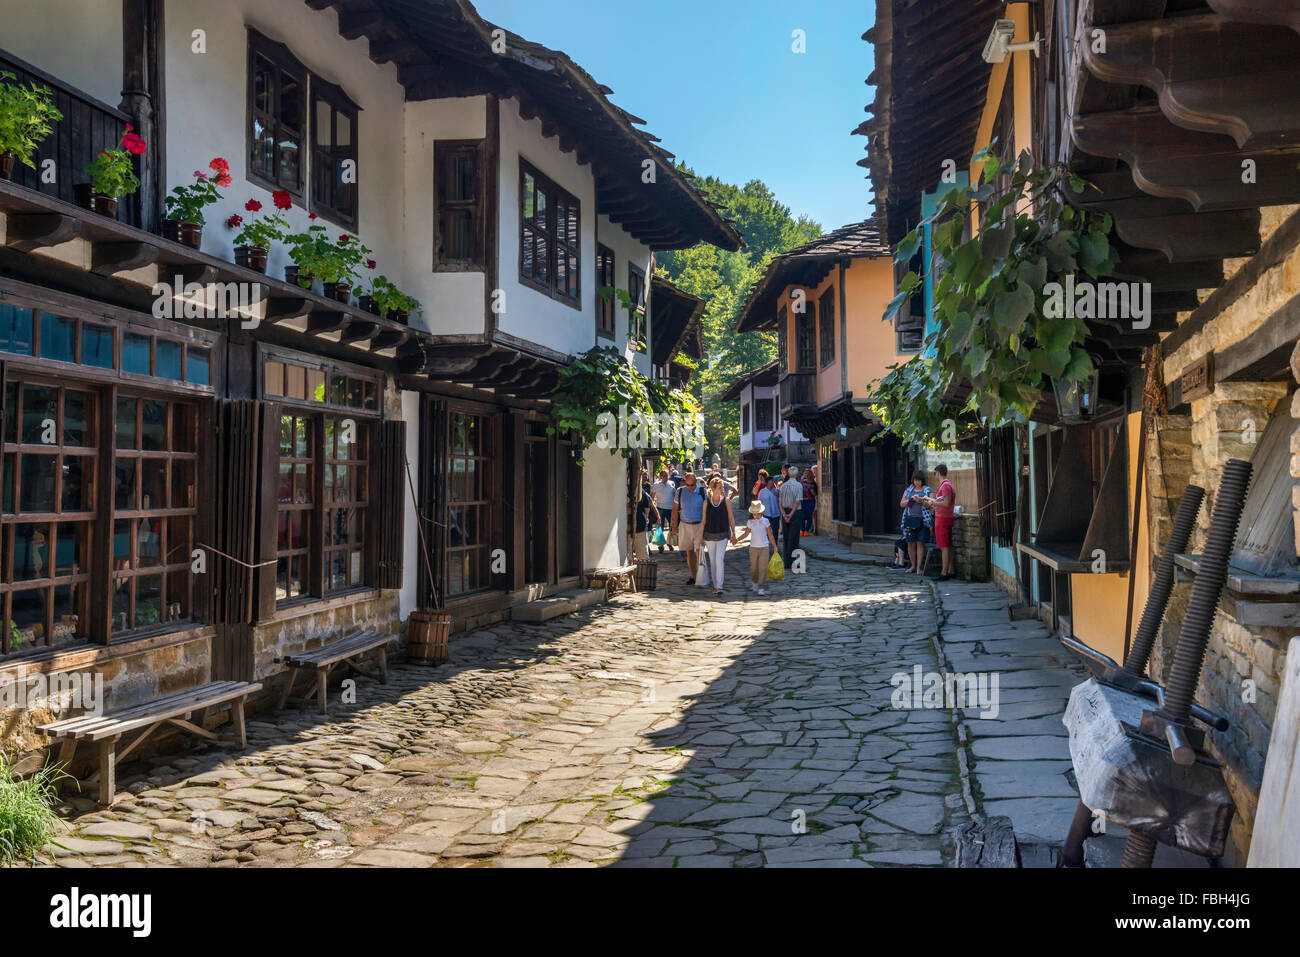 Etar Architectural Ethnographic Complex (Etara), open-air museum in Gabrovo, Bulgaria - Stock Image